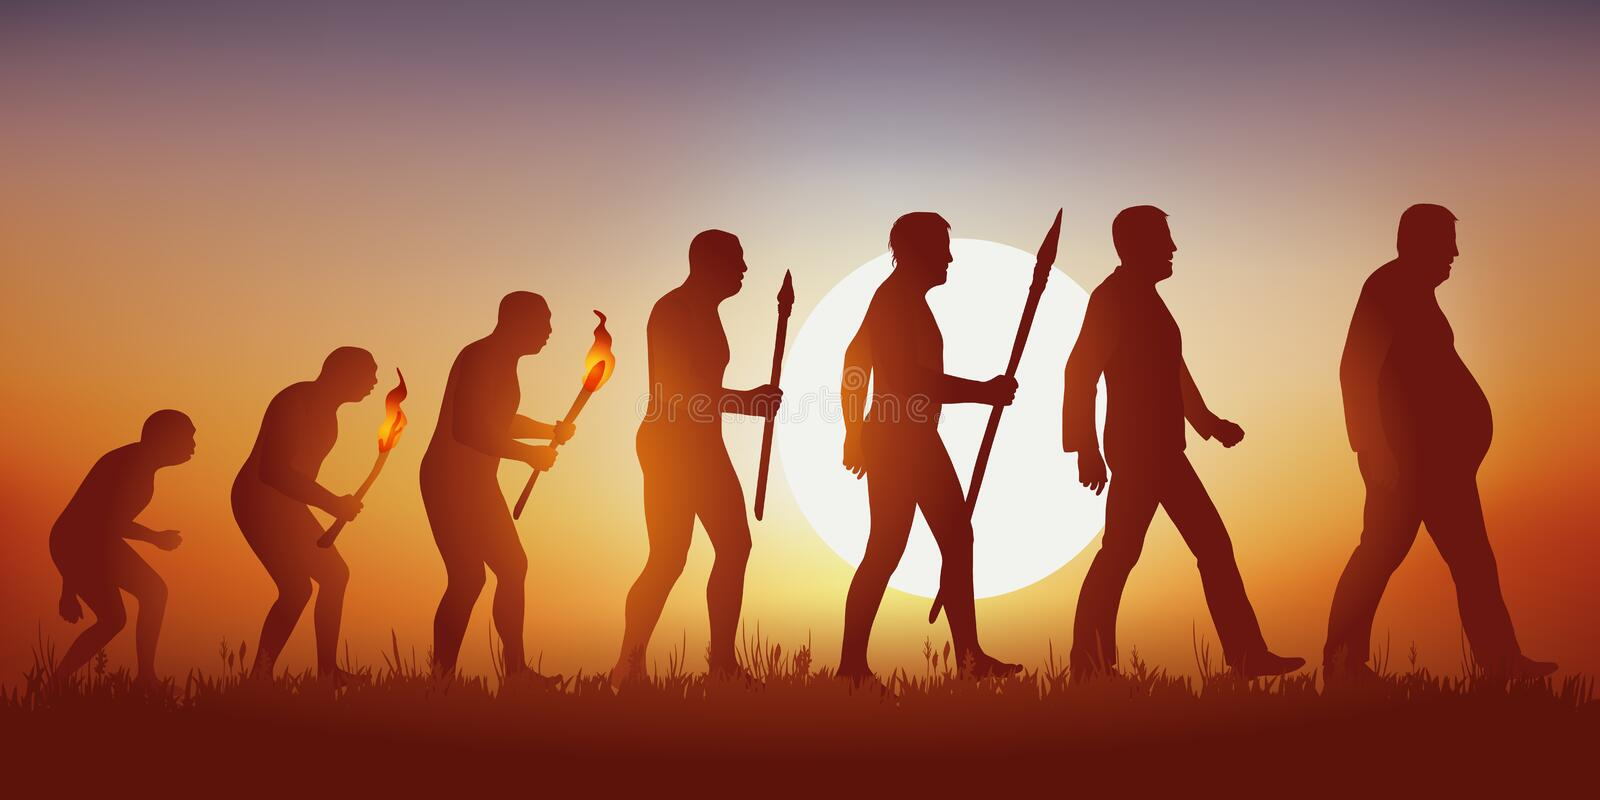 Theory of evolution of Darwin's human silhouette ending in the silhouette of an obese man. stock illustration